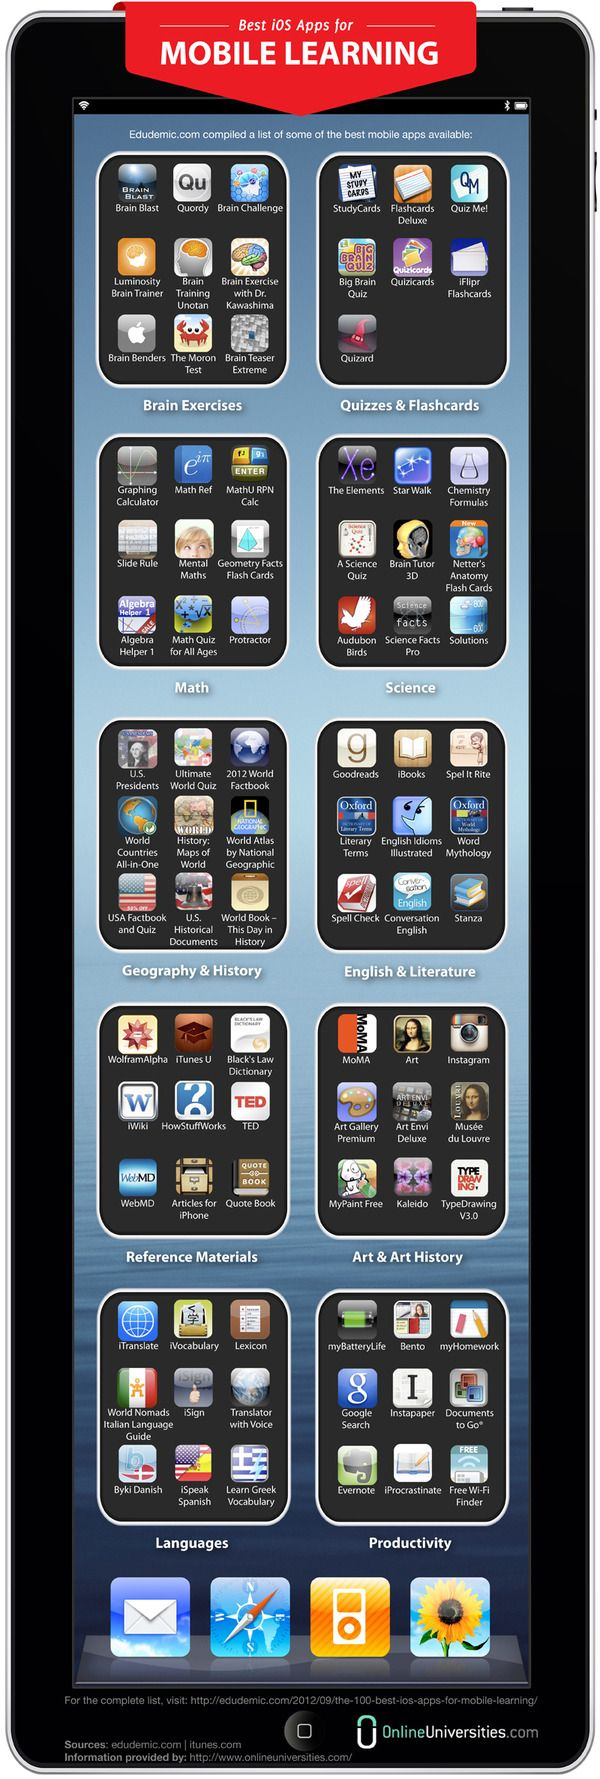 A good roundup of apps for education on mobile learning